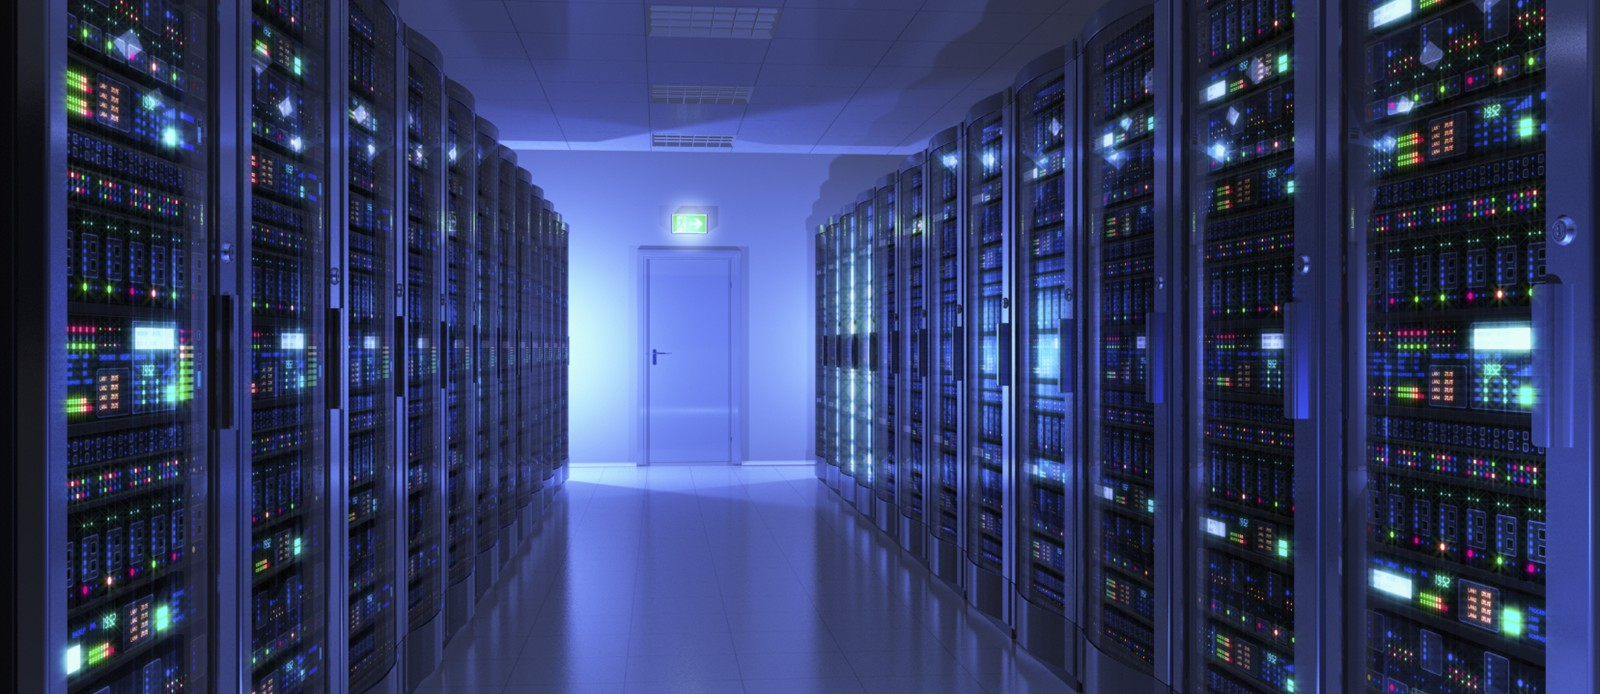 Need a Datacenter?